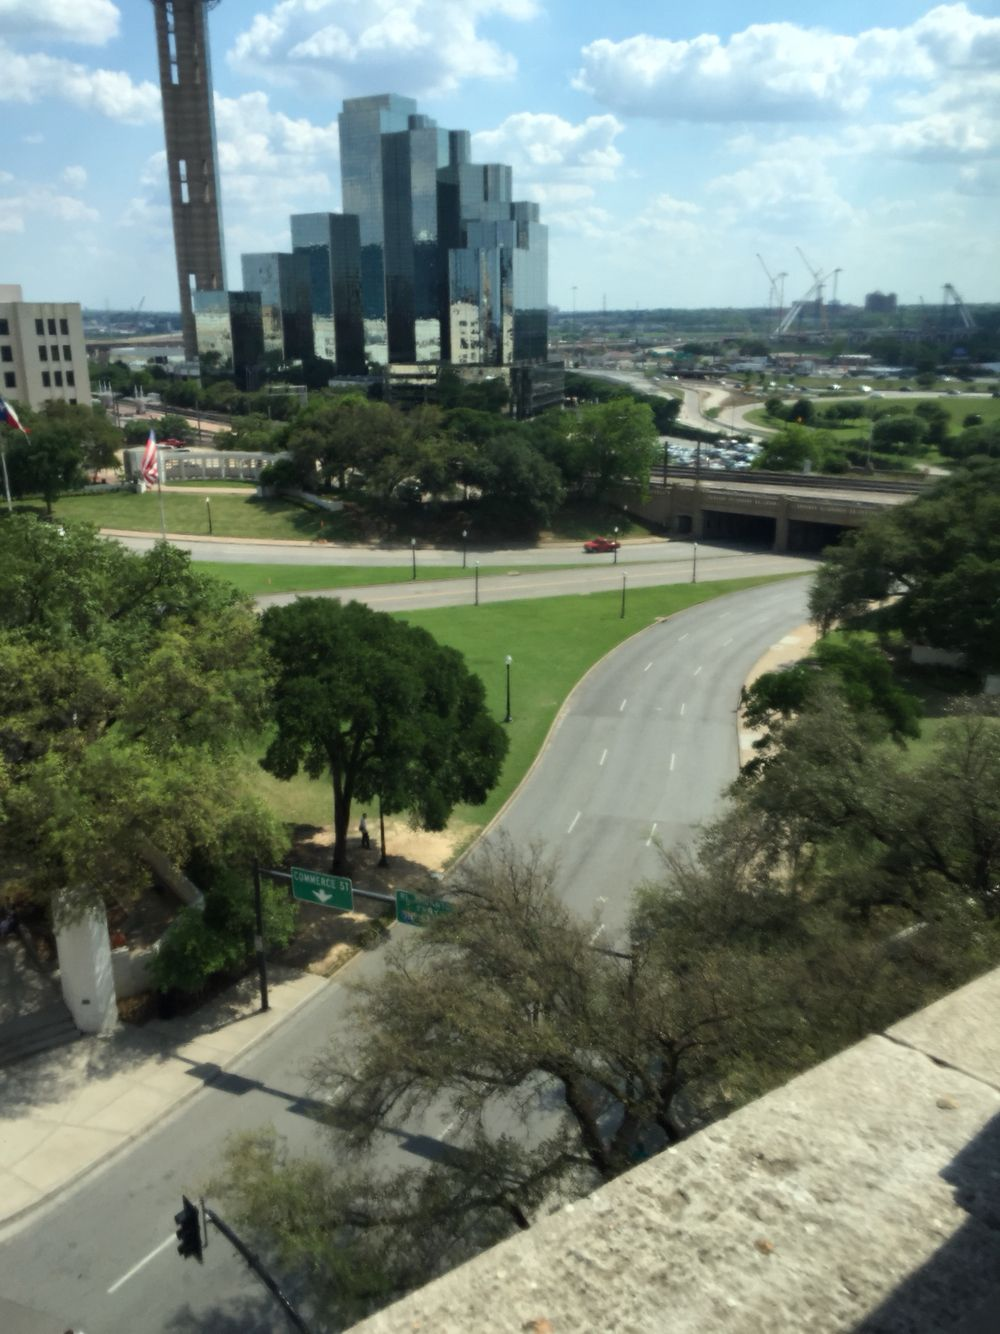 View from the sixth floor book depository. JFK assassination